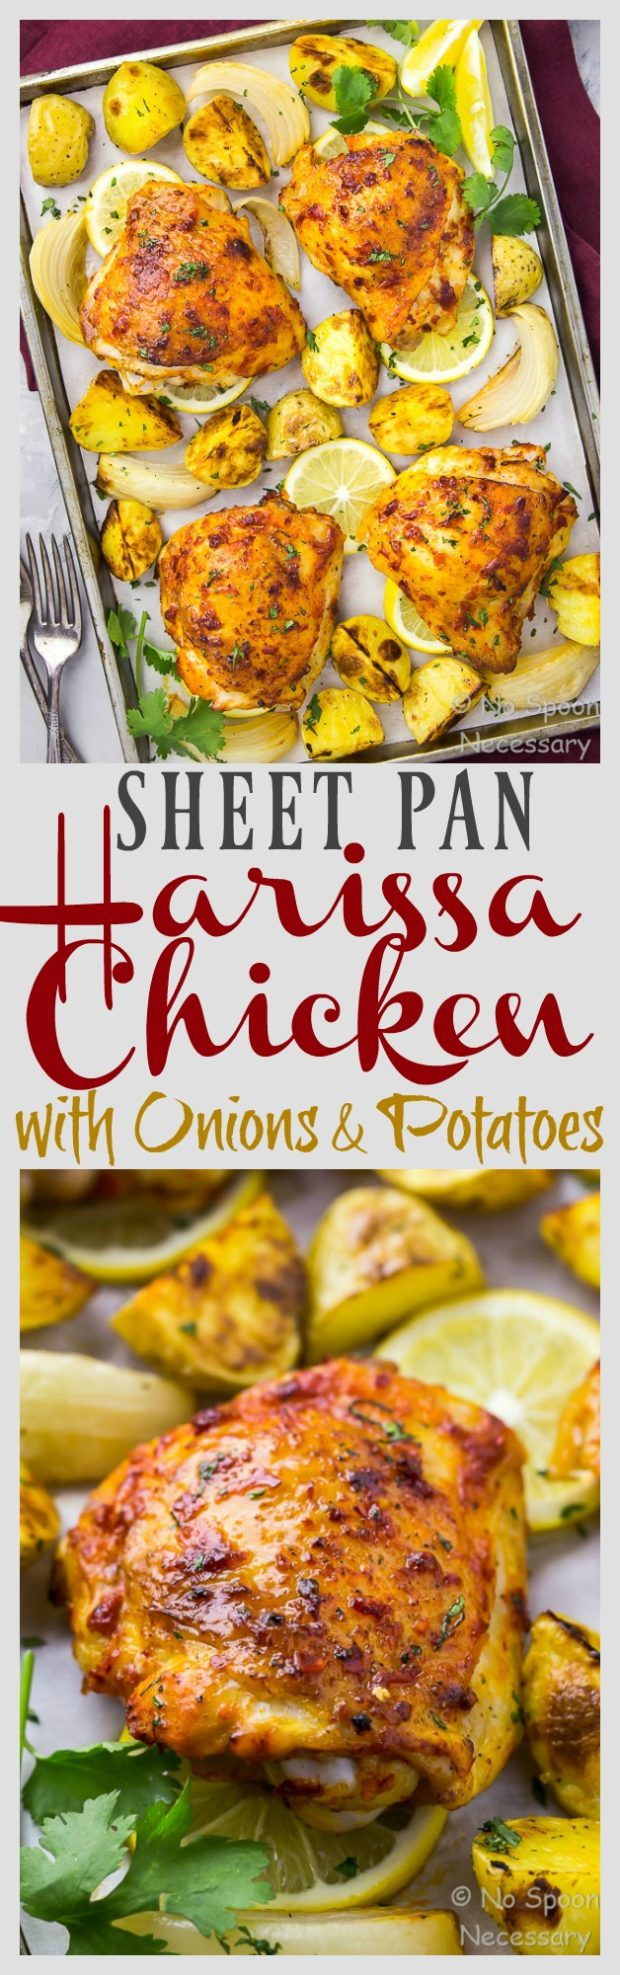 Sheet Pan Harissa Roasted Chicken Thighs, Potatoes & Onions